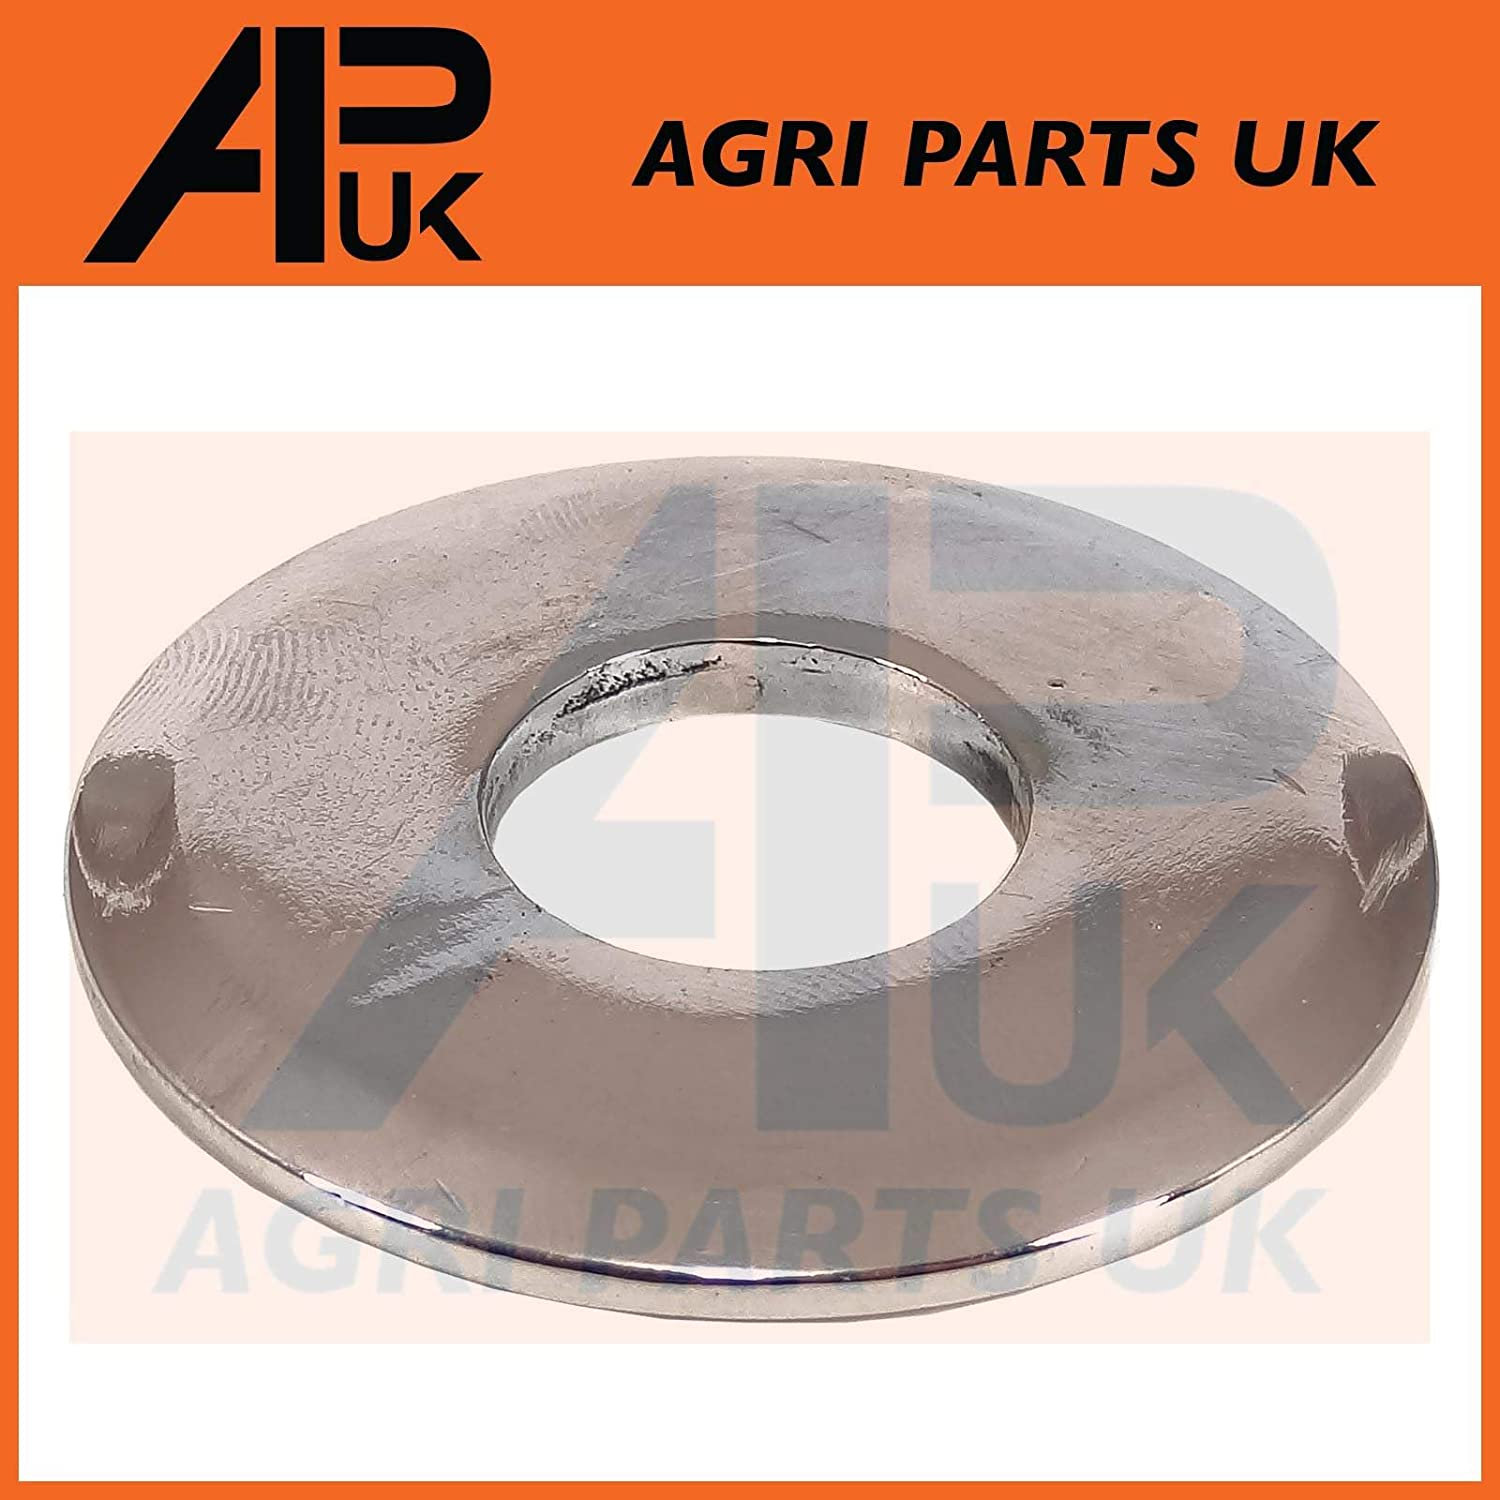 APUK Massey Ferguson Steering wheel Chrome Washer David Brown Fordson Major Tractor Agri Parts UK Ltd